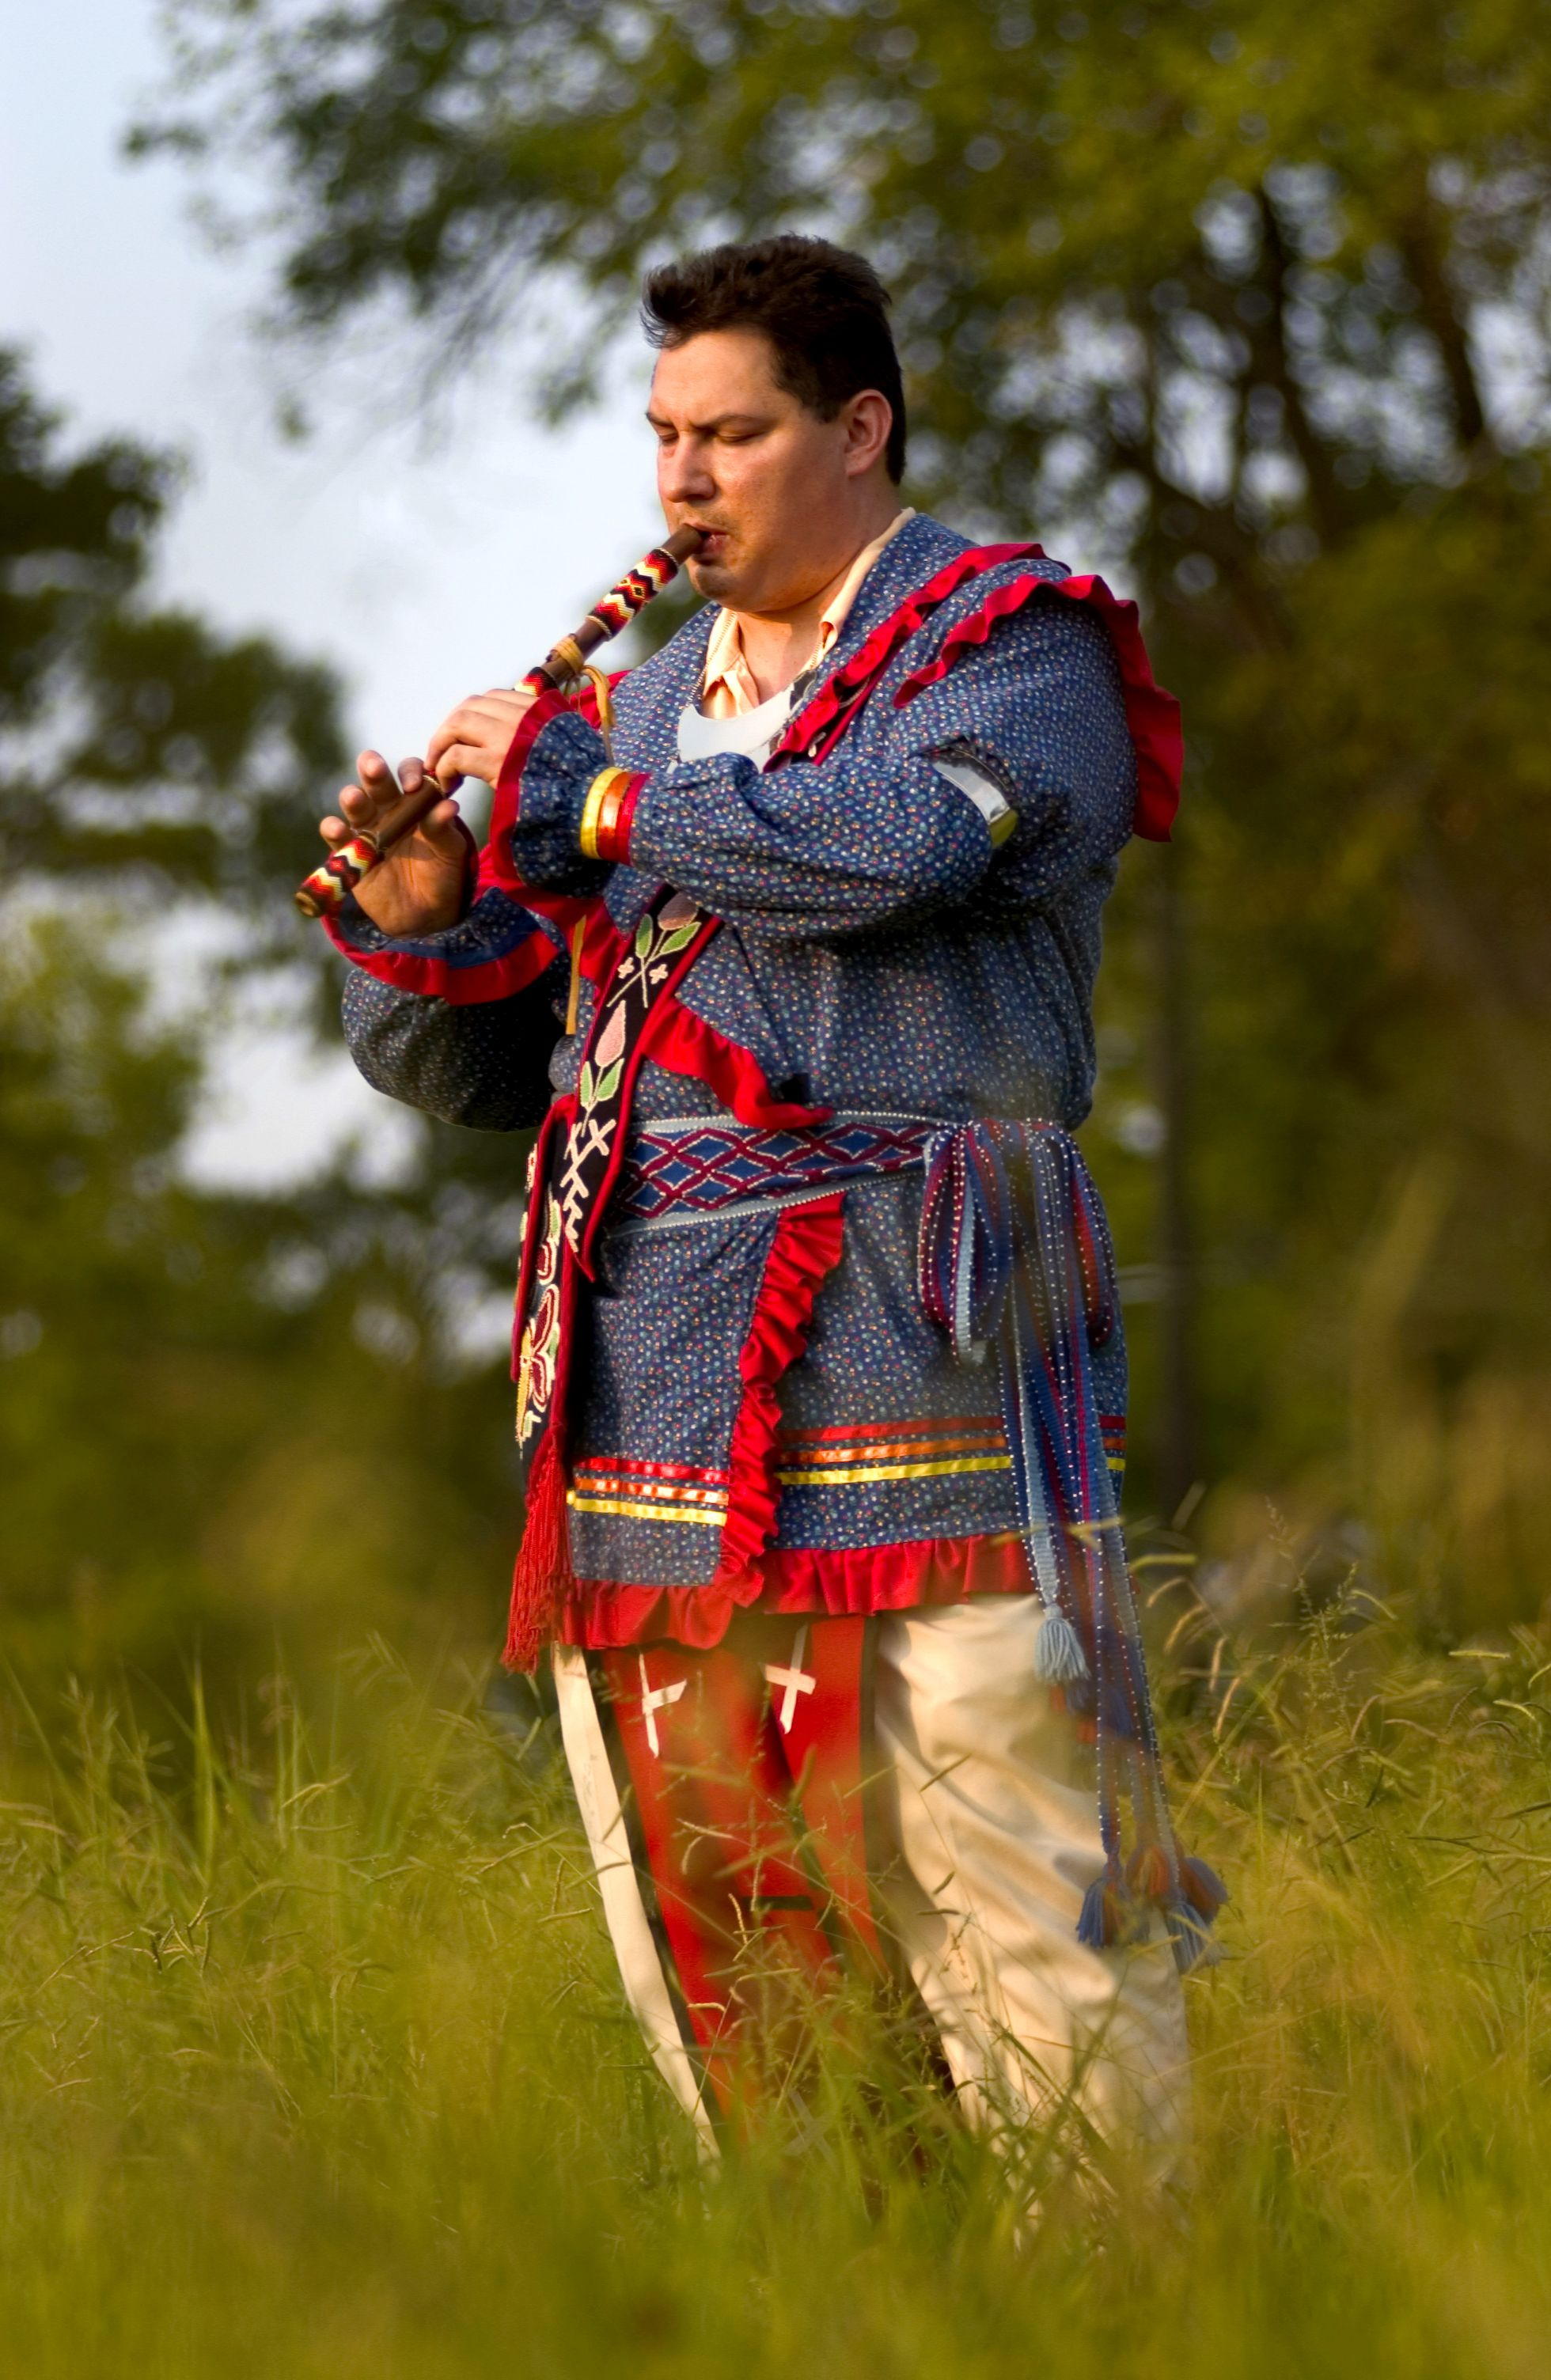 The Native American Culture Of The Muscogee Creek Nation